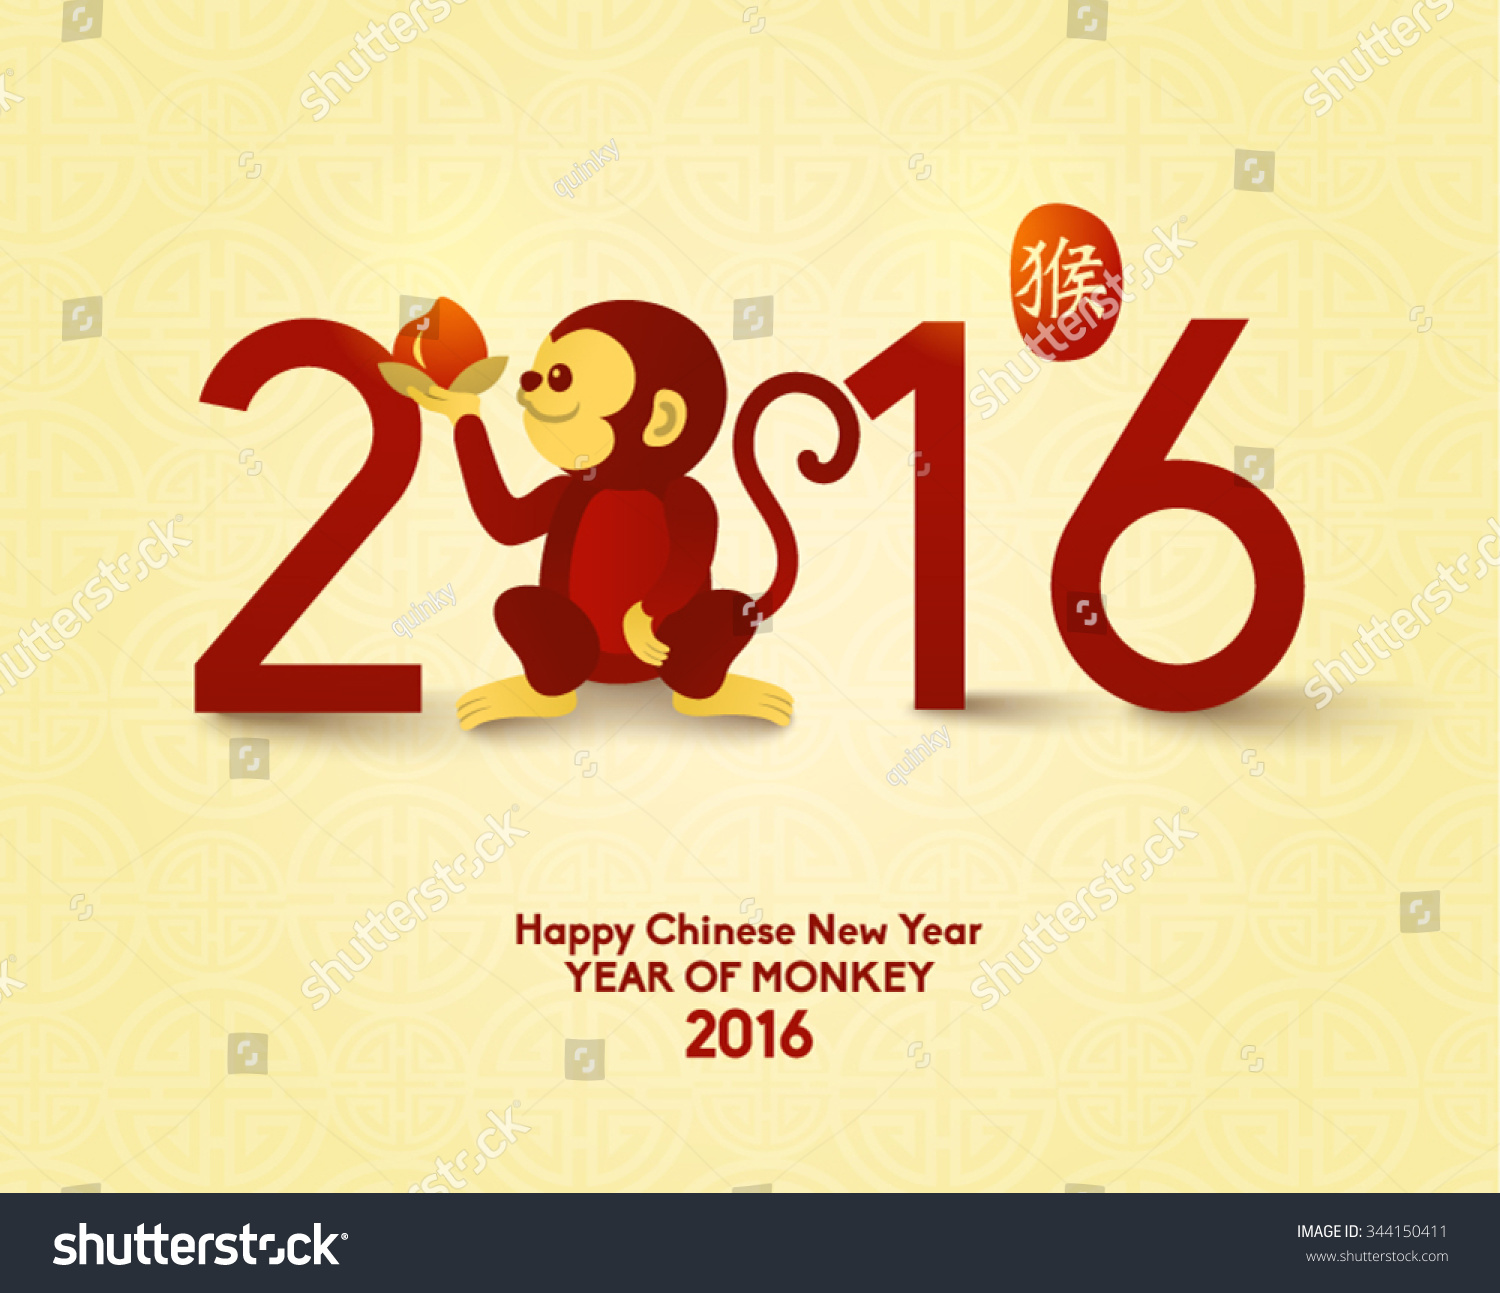 Oriental Happy Chinese New Year 2016 Year of Monkey Vector Design ...